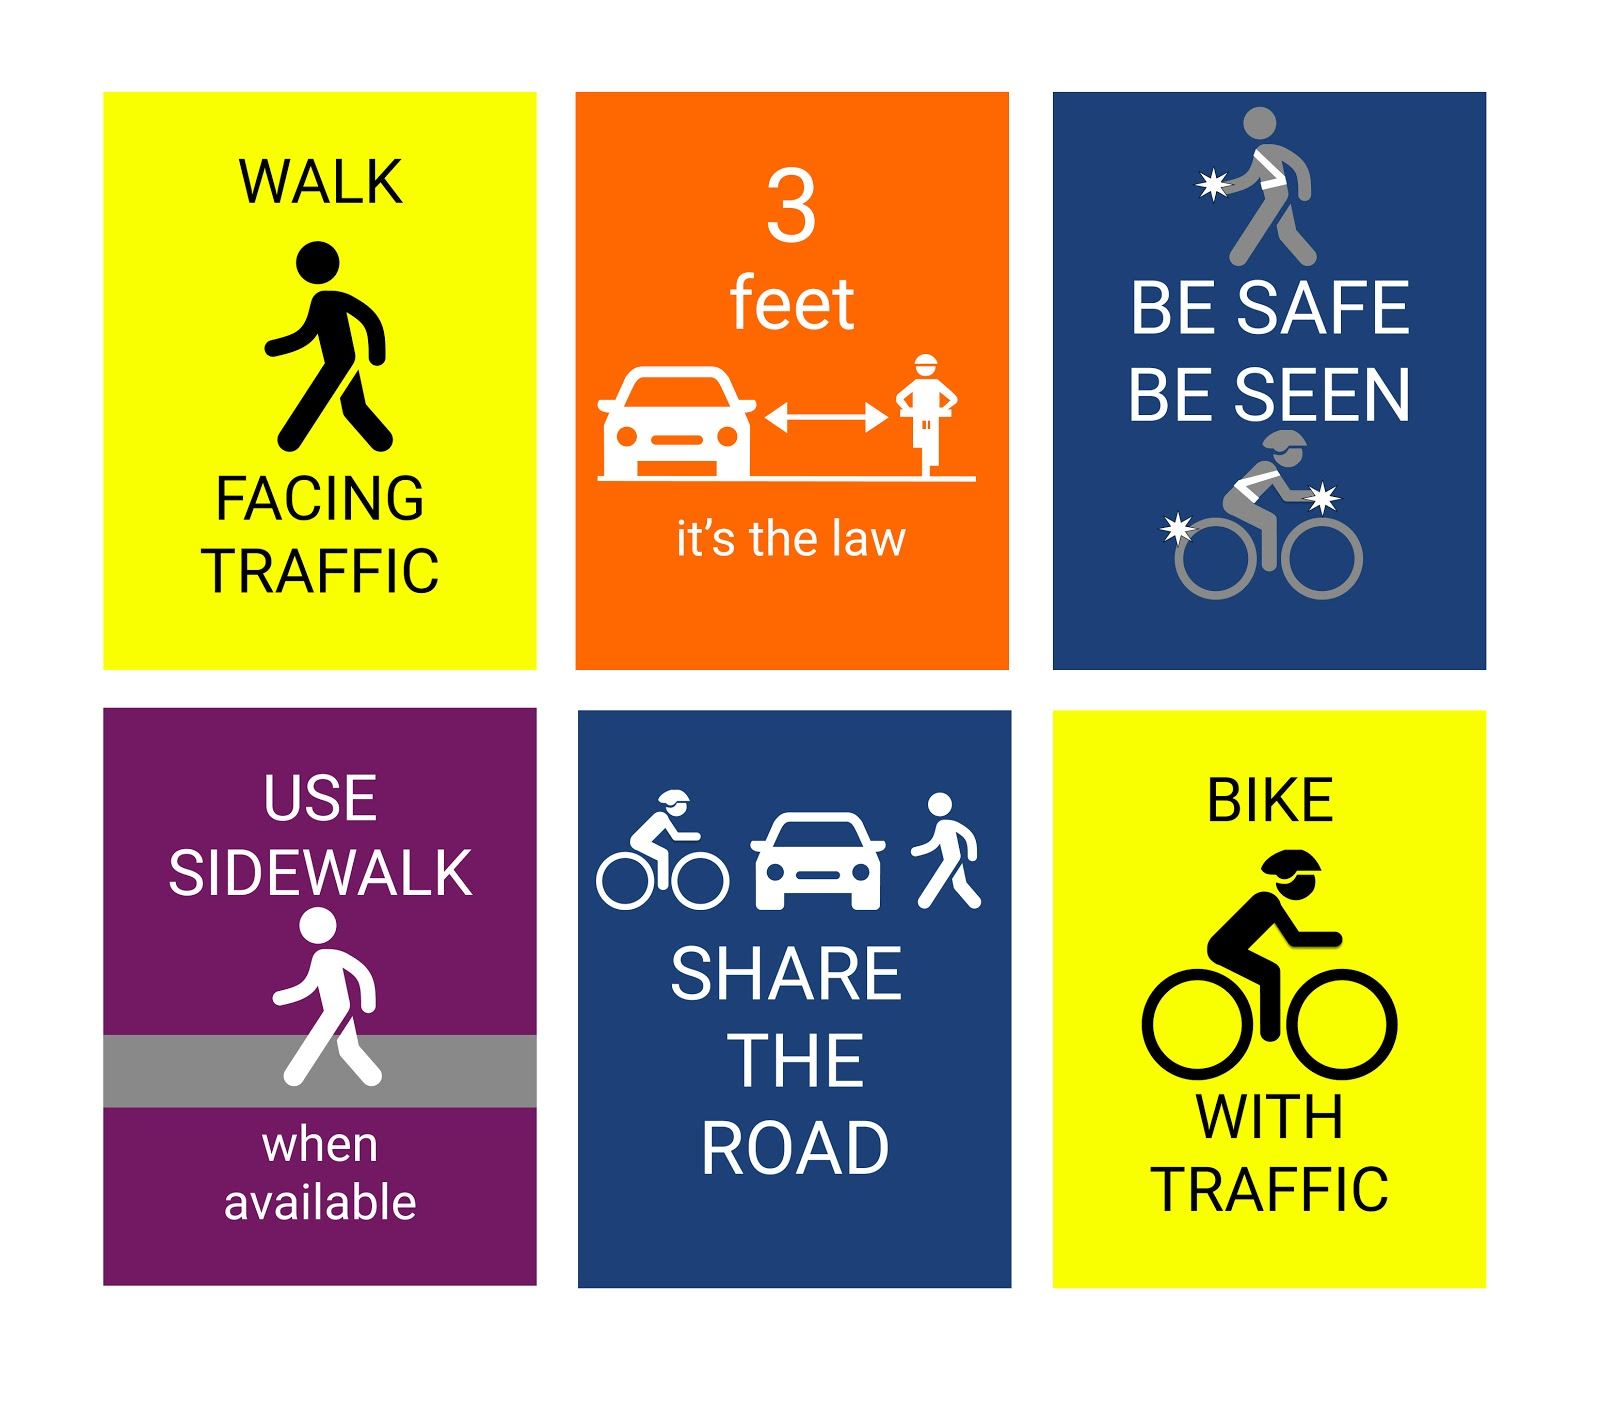 Safety Sign - walk facing traffic, 3 feet, be safe be seen, use sidewalks, share the road, bike with